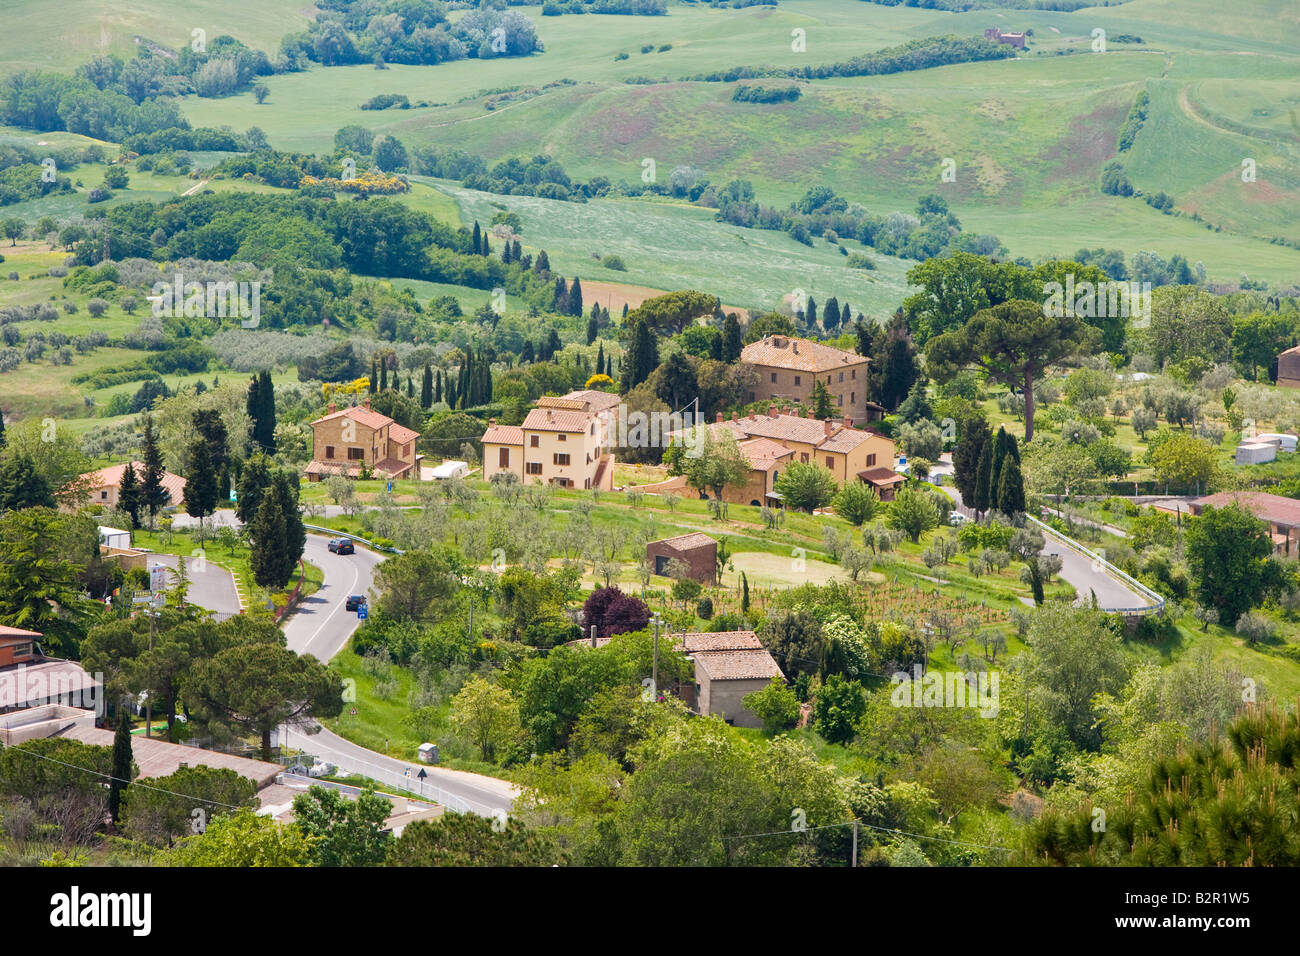 Landscape nearby Volterra - Stock Image